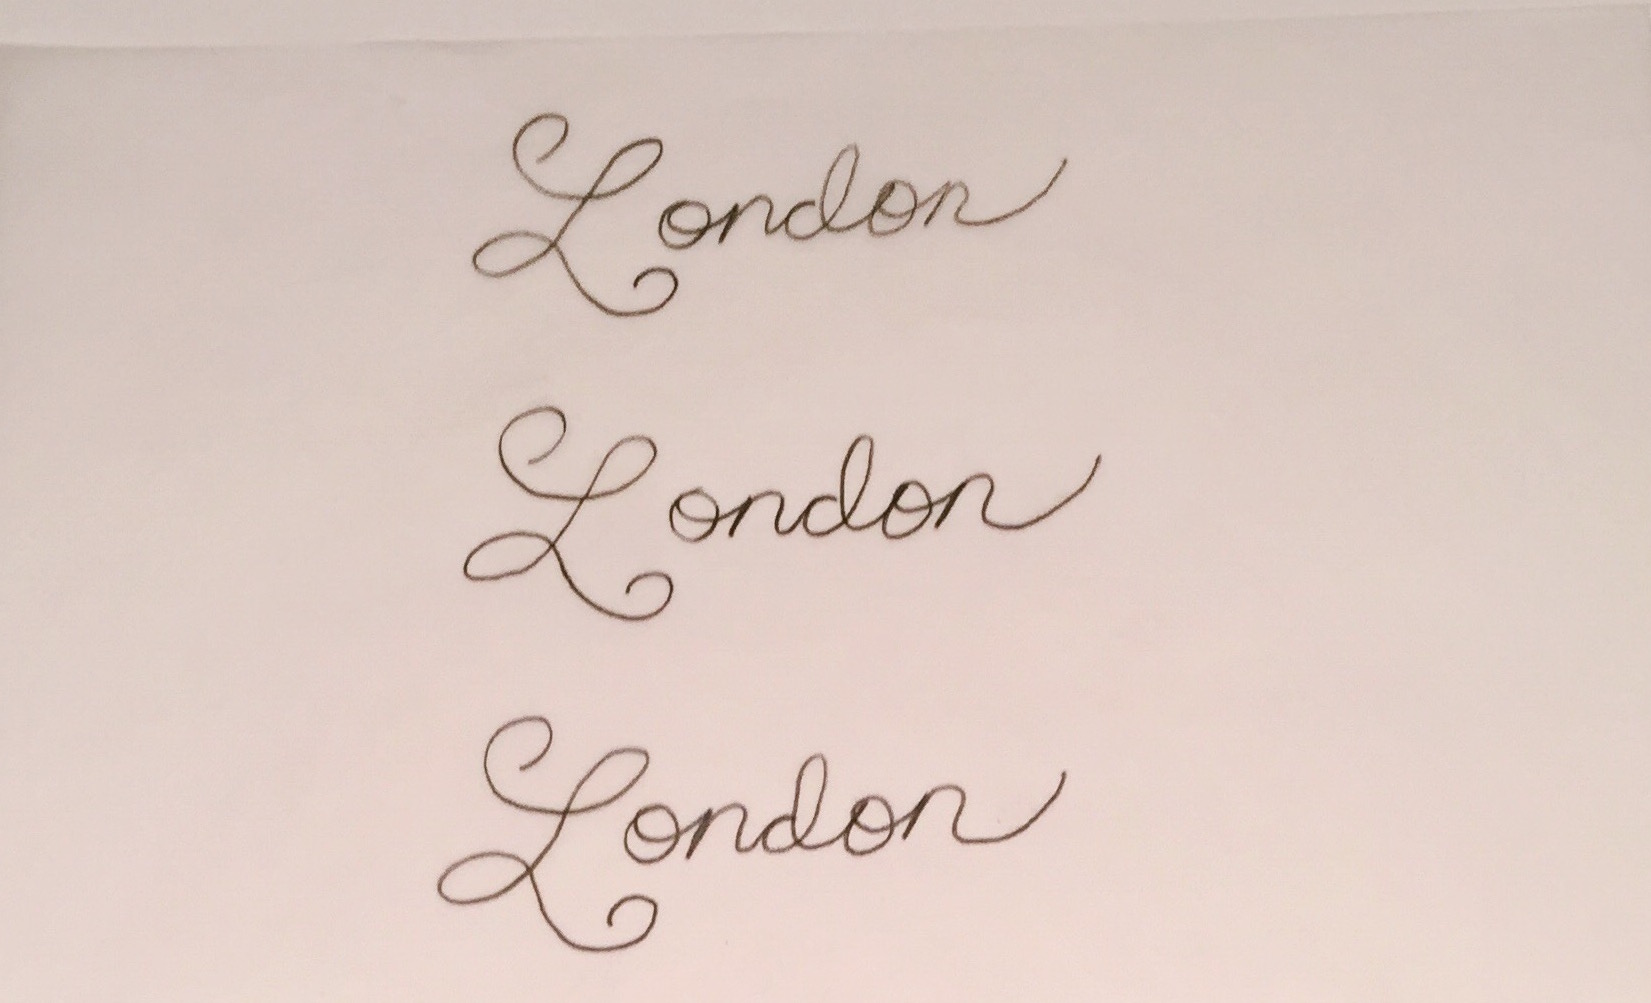 The lettering process begins with sketching out some ideas for the lettering on paper.